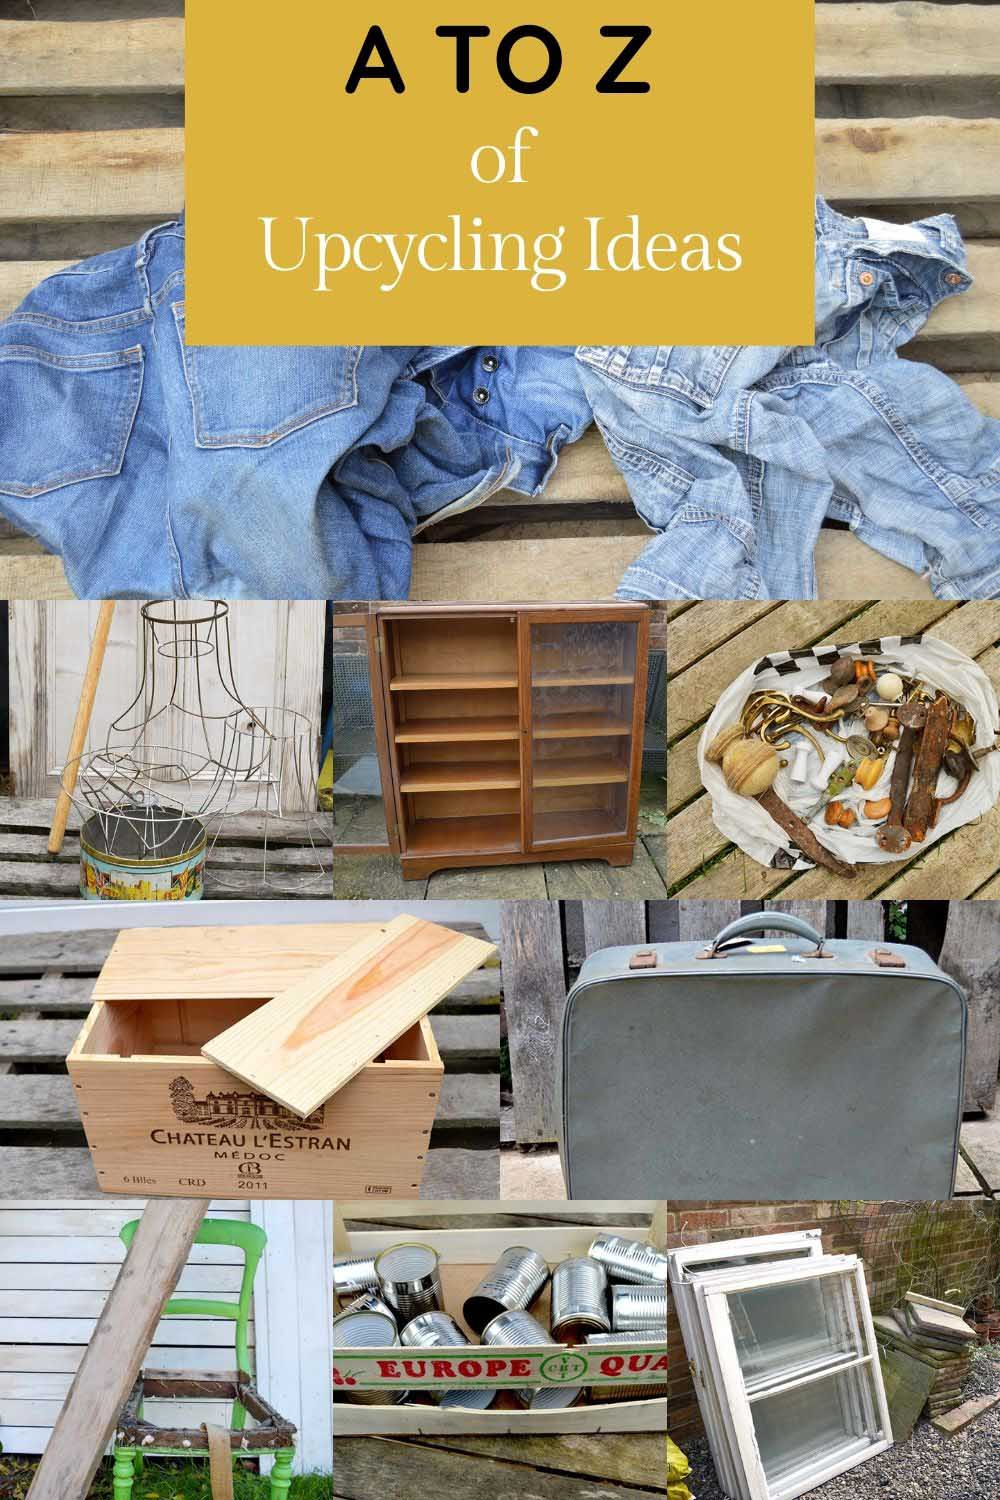 A to Z clever upcycling ideas